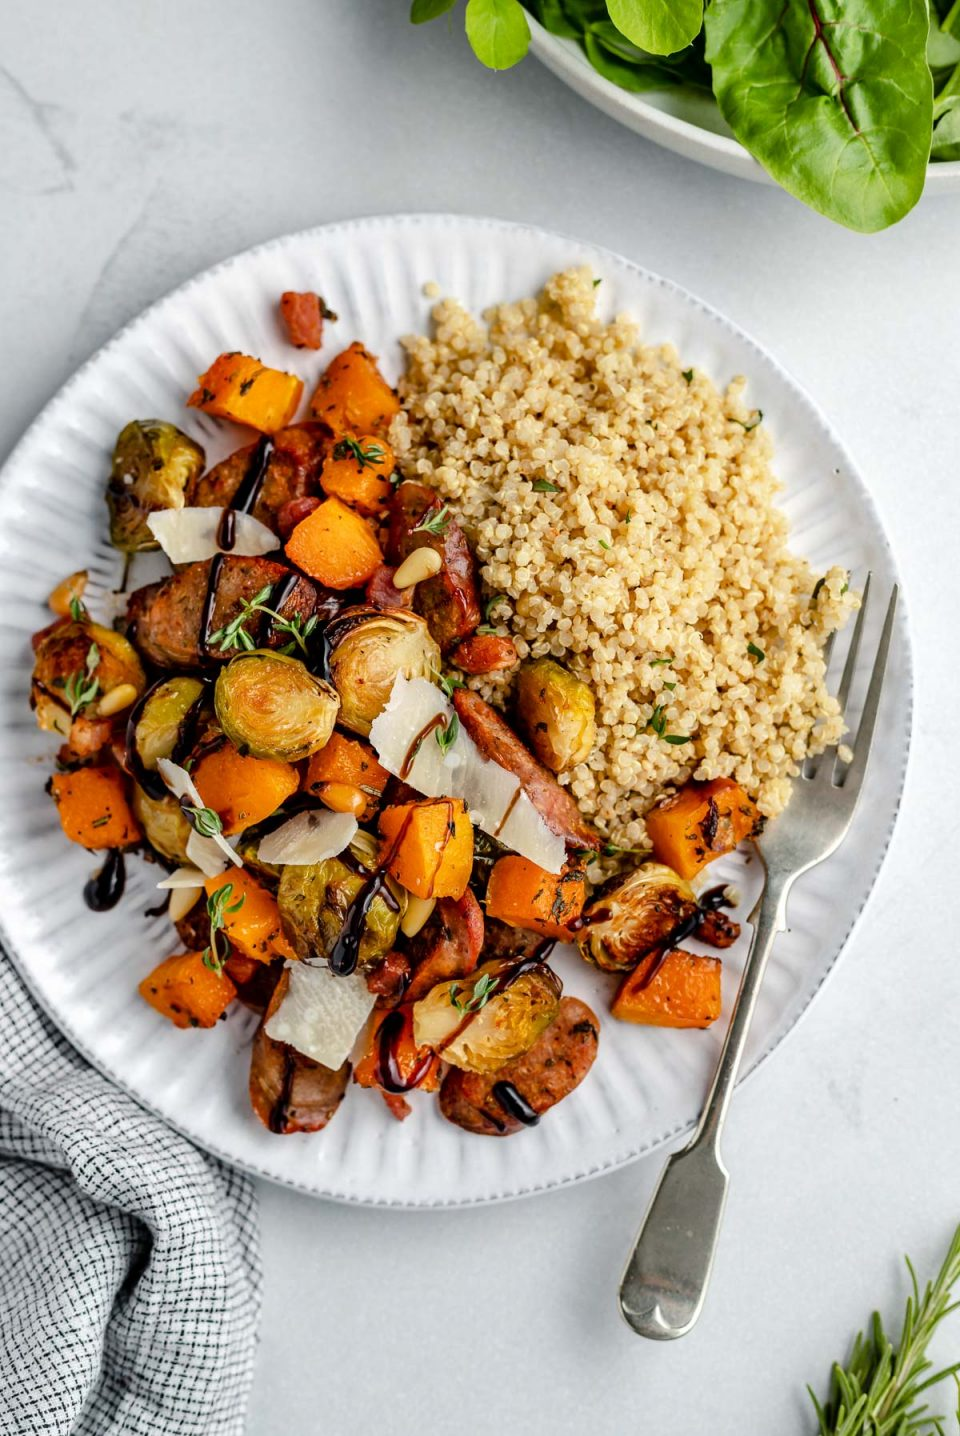 Roasted chicken apple sausage, butternut squash & brussels sprouts with quinoa on a white plate. The chicken sausage & veggies are topped with parmesan, a drizzle of balsamic glaze, & a sprinkling of fresh herbs. The plate sits atop a light blue surface next to a gray striped linen napkin.